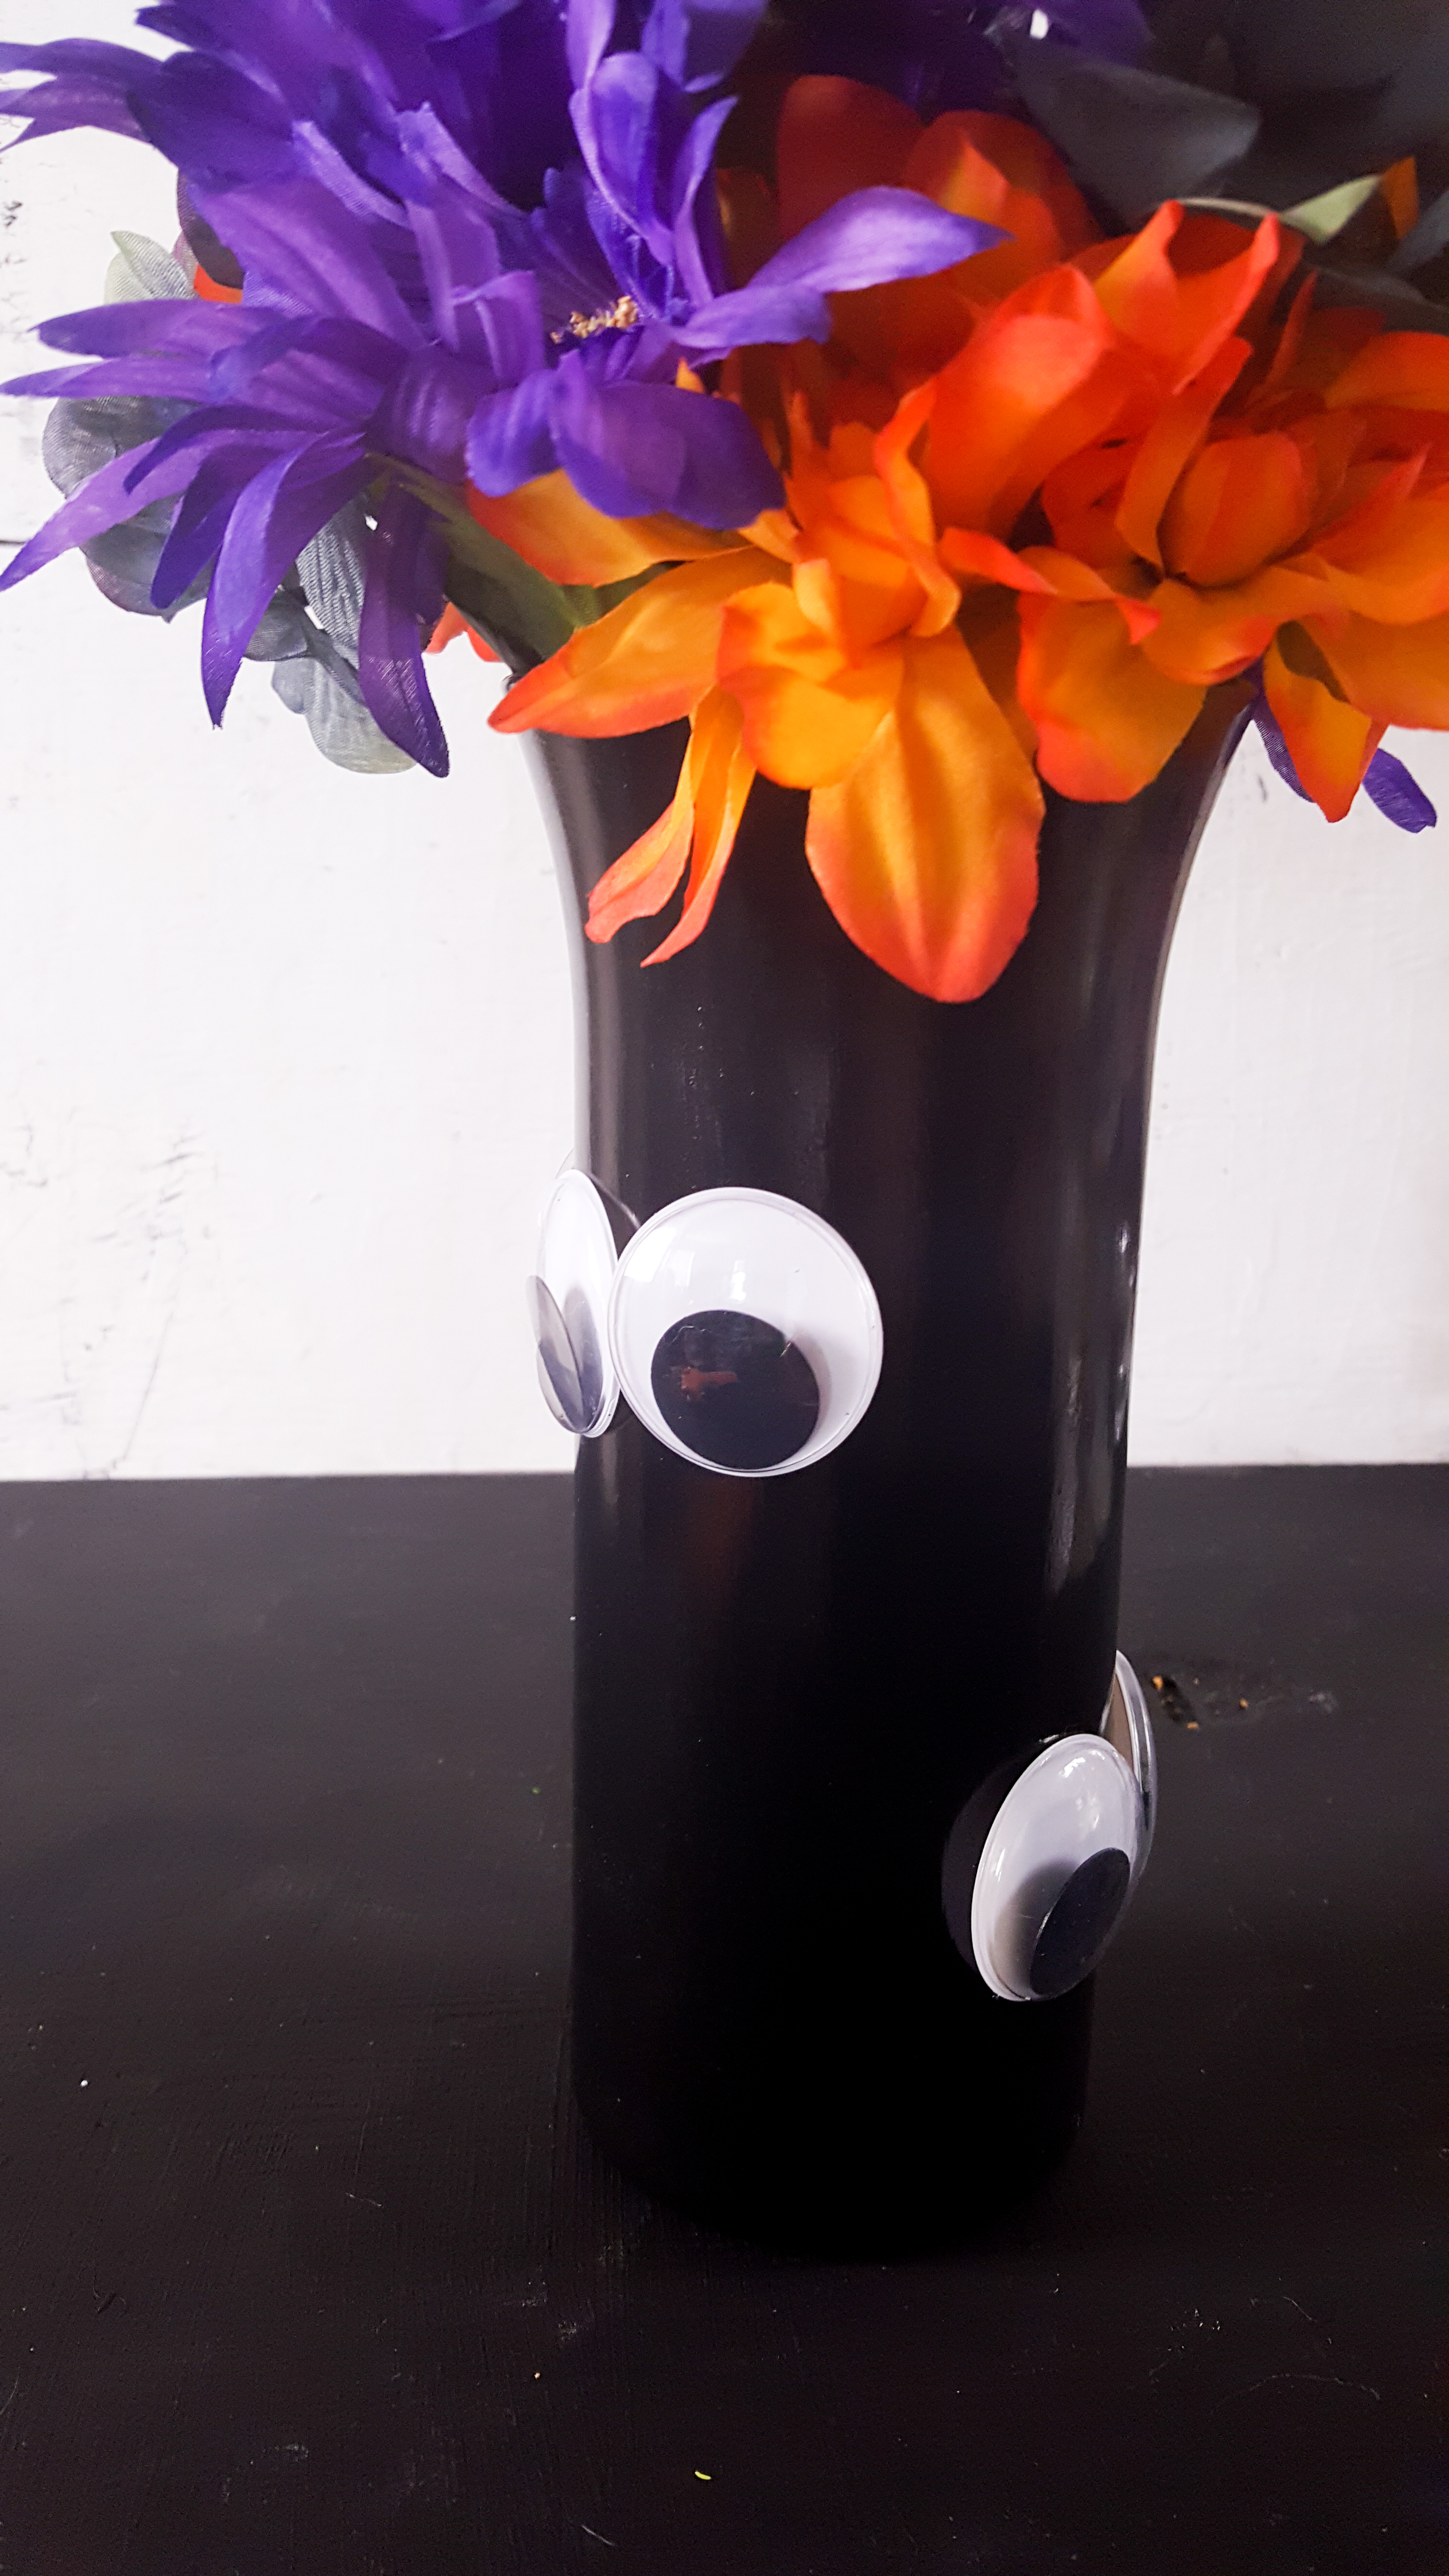 Looking for a simple DIY Halloween decoration? This simple Halloween craft is so cute and is a great dollar store Halloween craft.